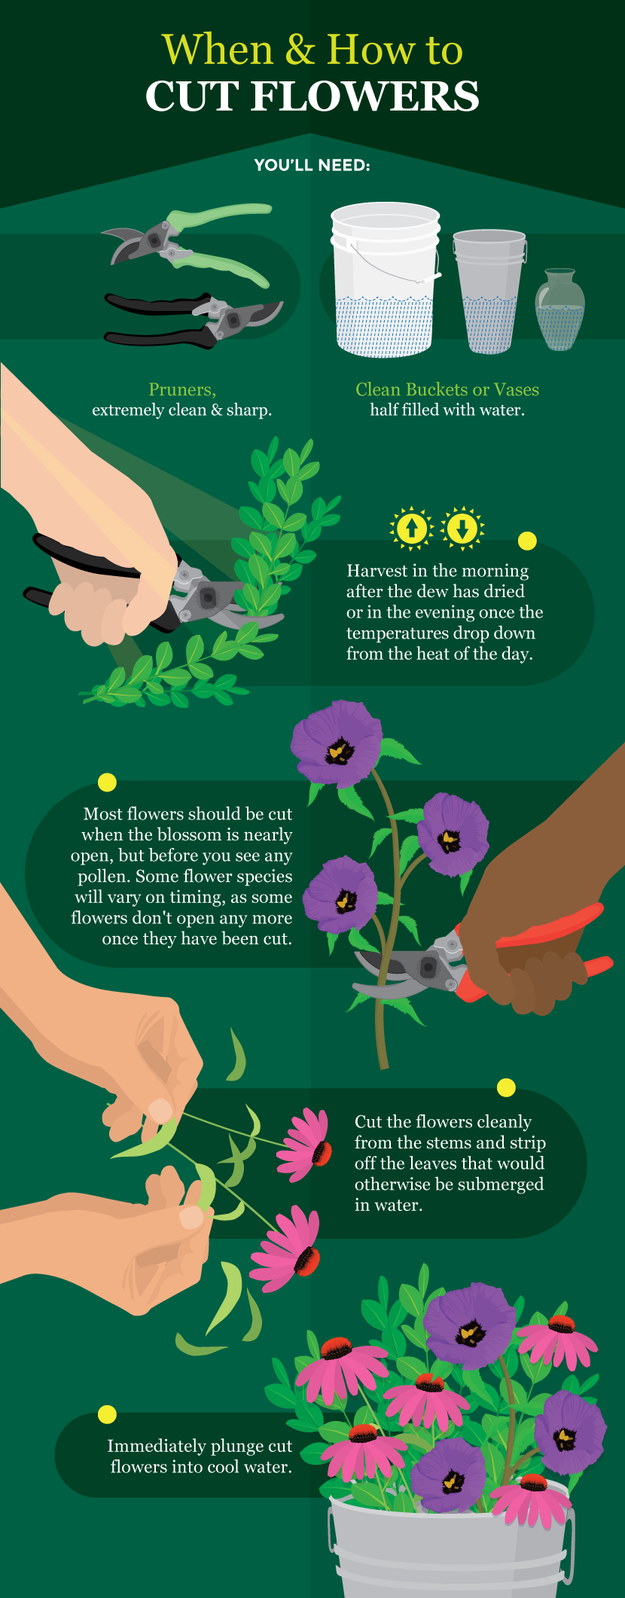 If you're putting them in a vase, here's how to cut them properly: